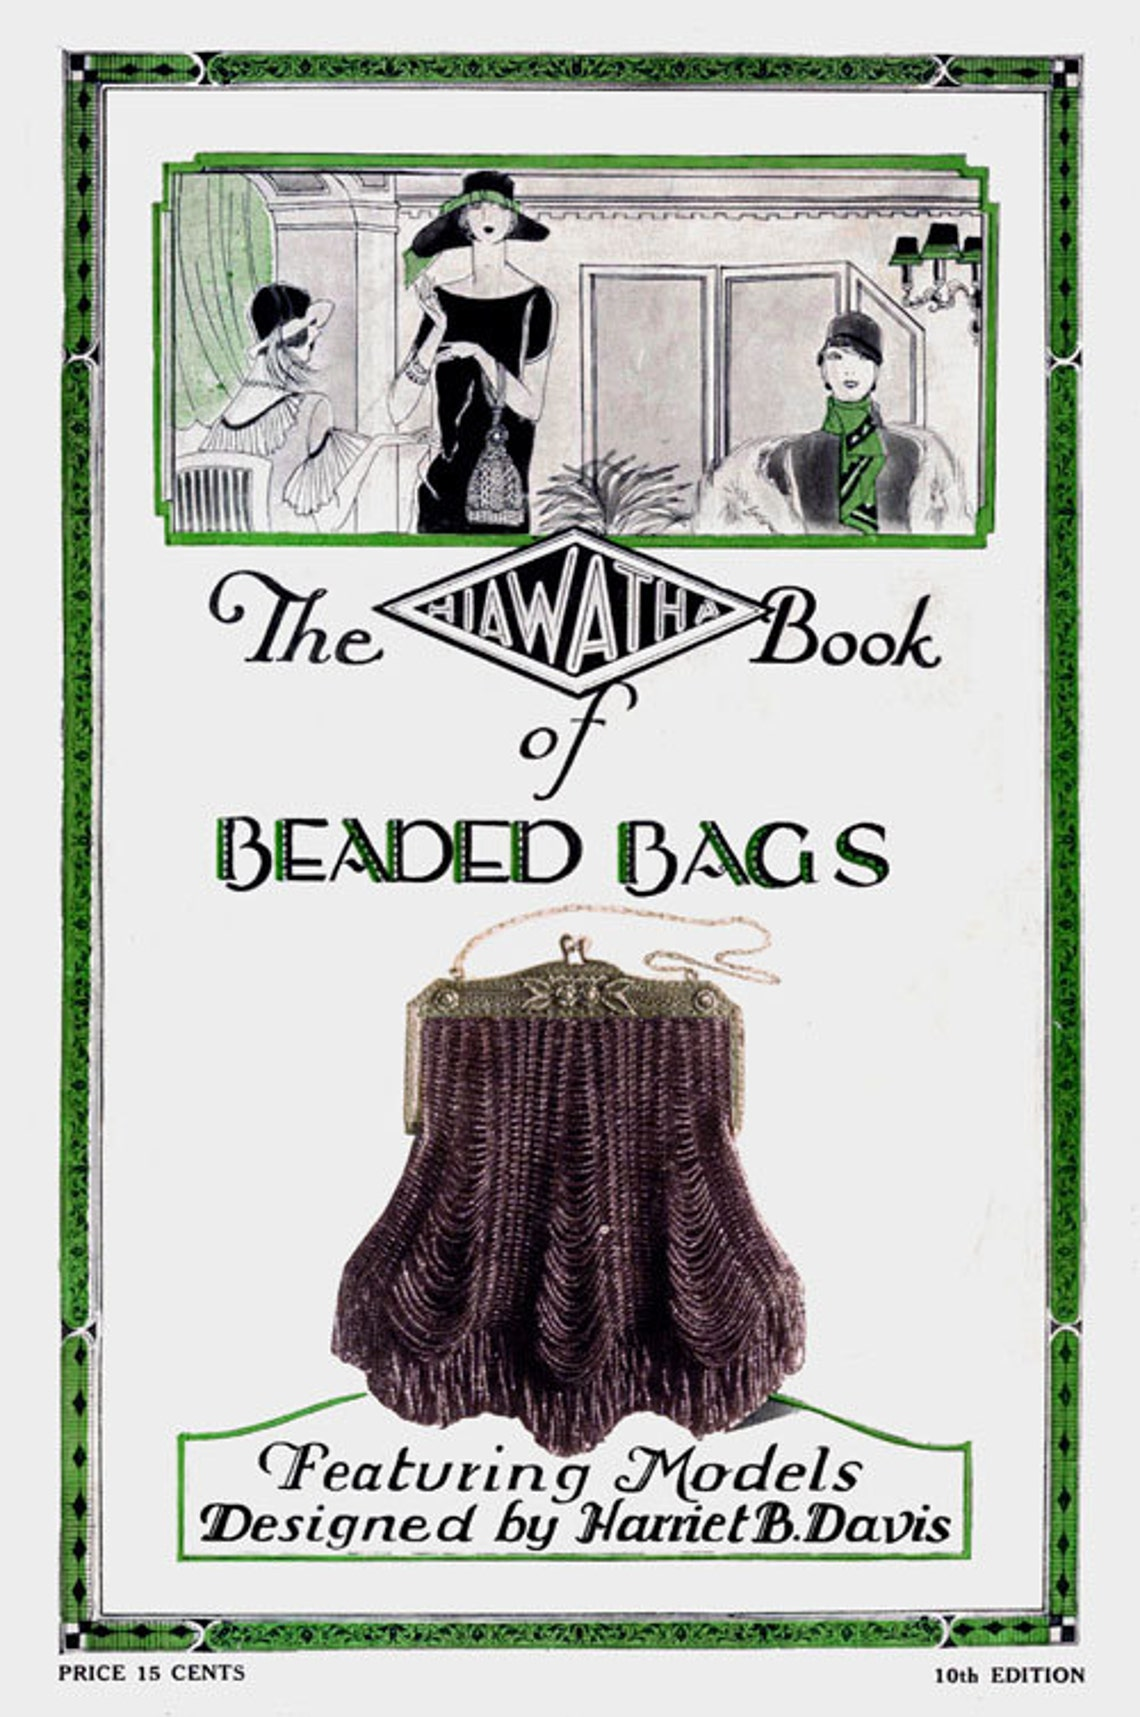 1920s Handbags, Purses, and Shopping Bag Styles Hiawatha Beaded Bags #10 c.1927 - Vintage 1920s Patterns to Make Bead Purses in Knitting & Crochet (PDF Ebook Digital Download) $5.97 AT vintagedancer.com